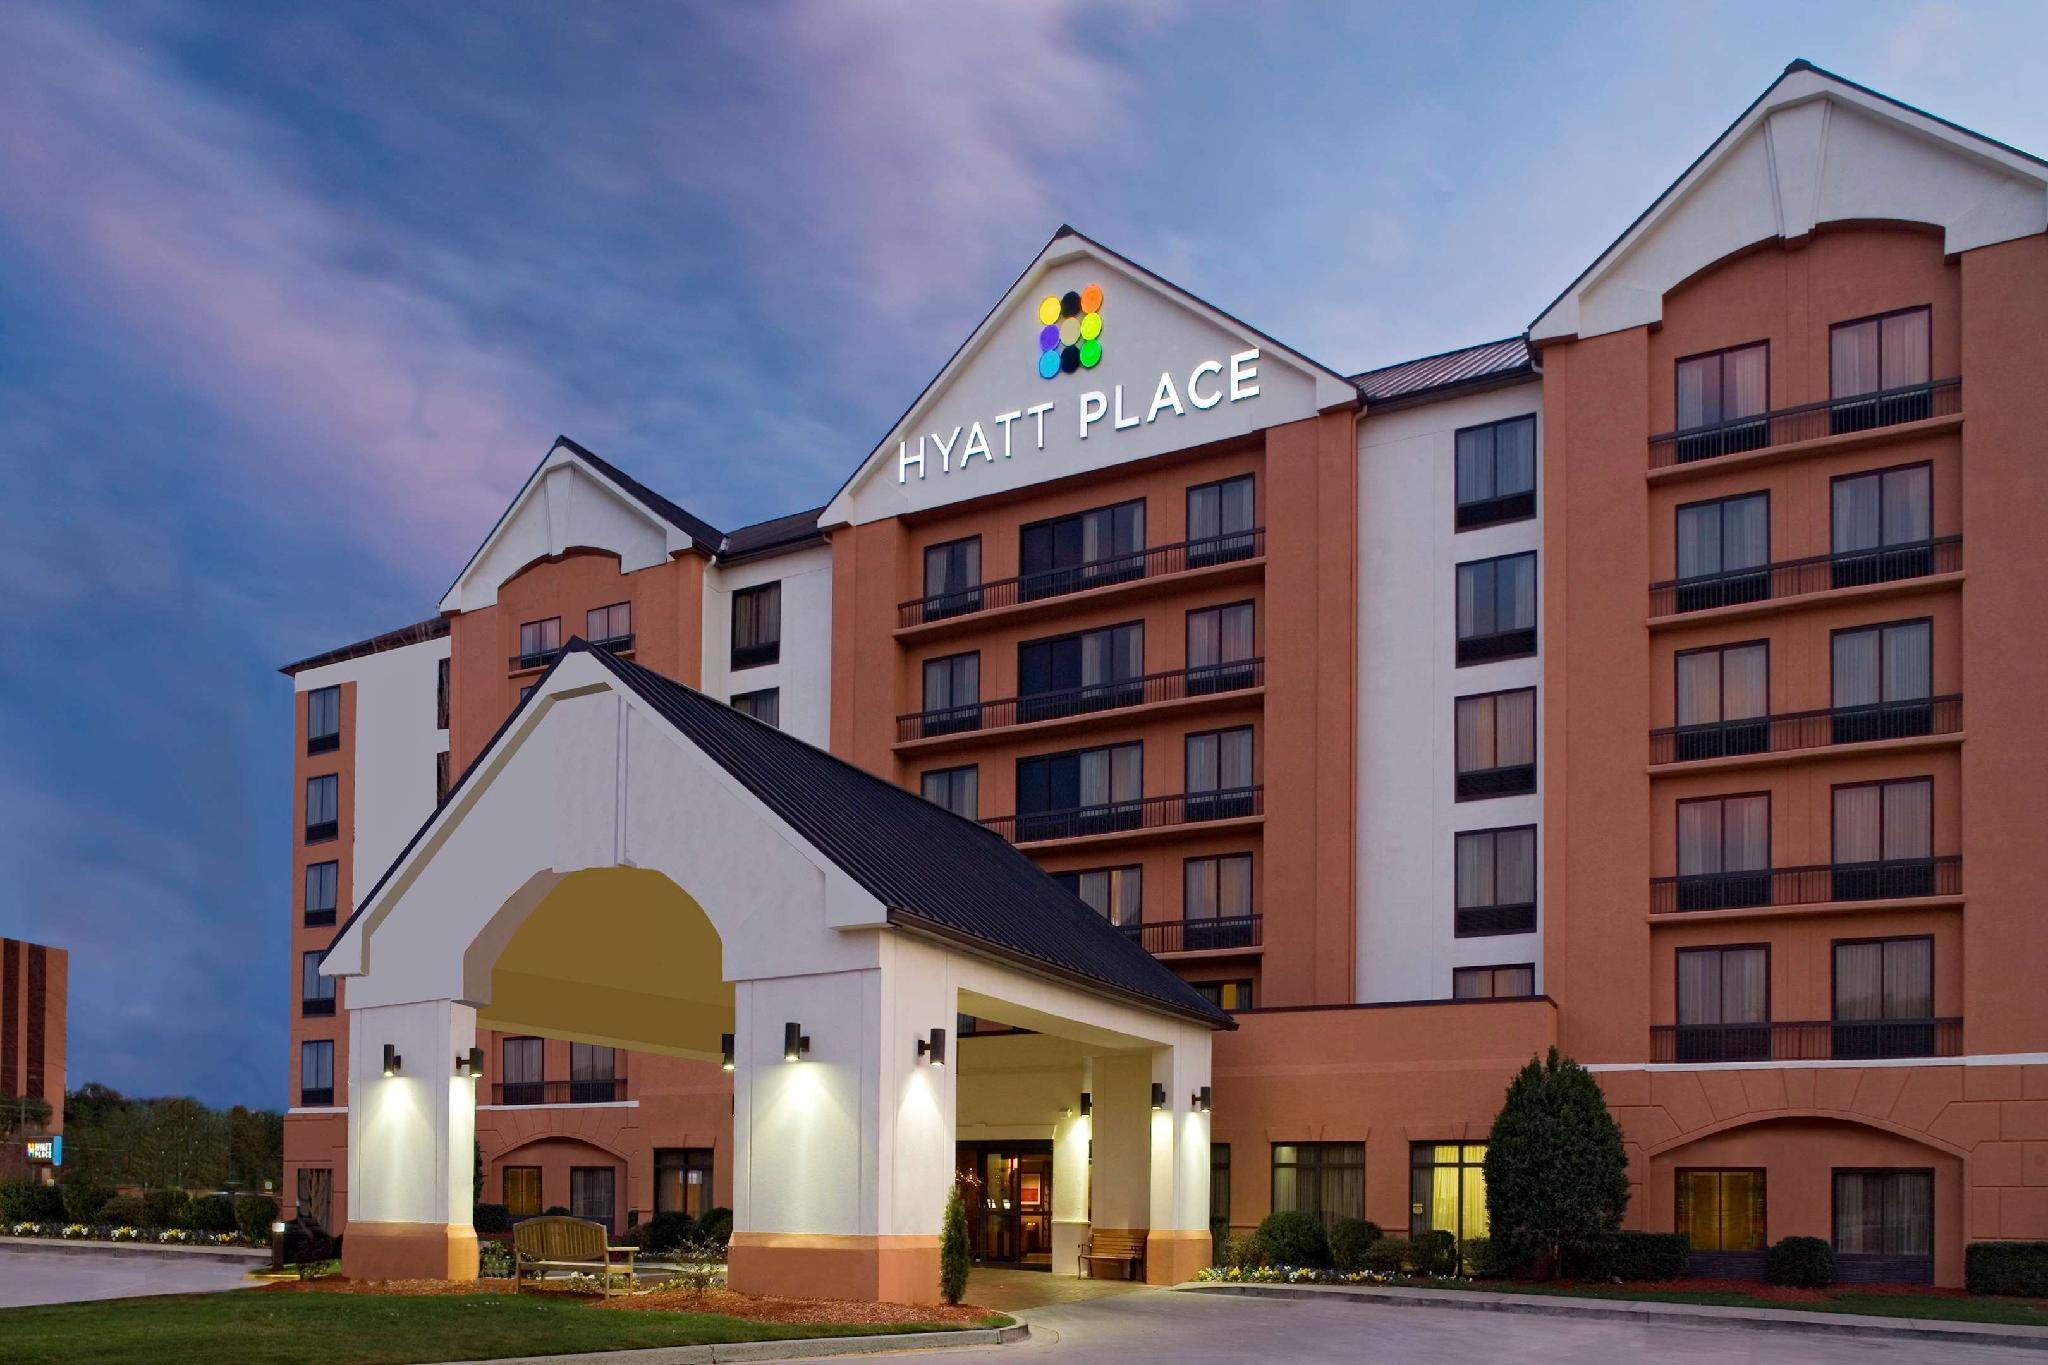 Hyatt Place Atlanta Cobb Galleria